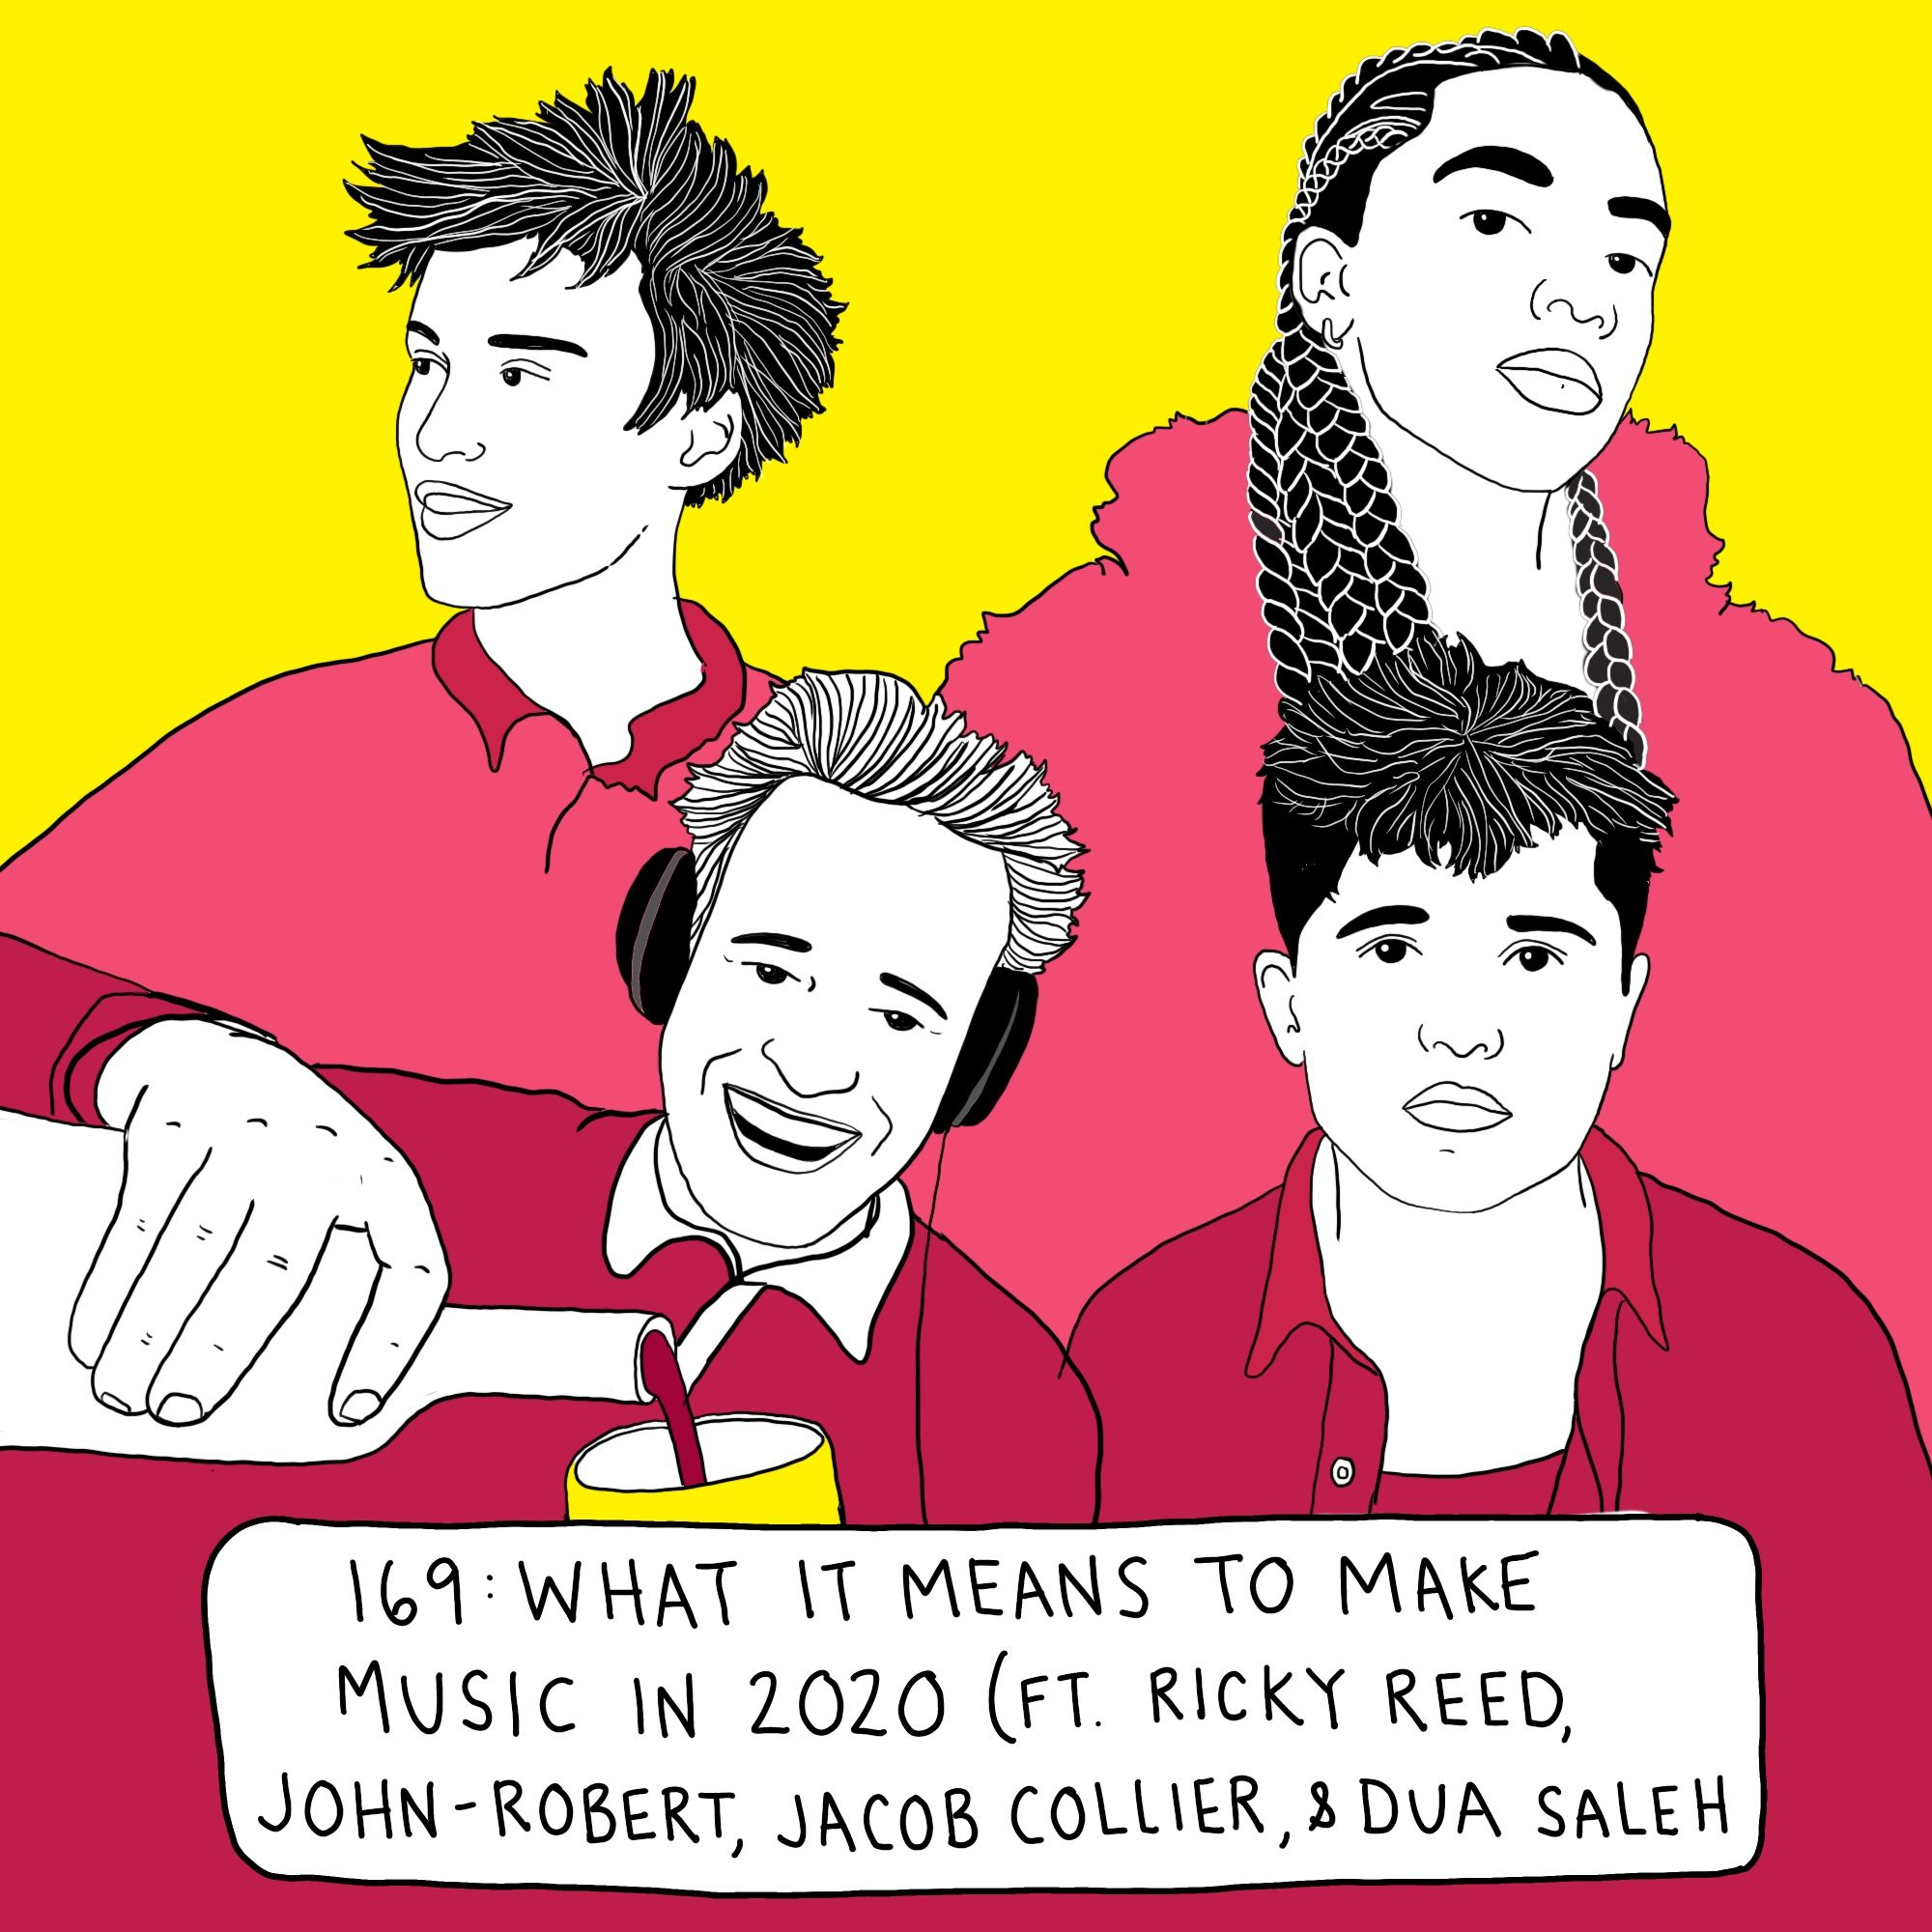 What it means to make music in 2020